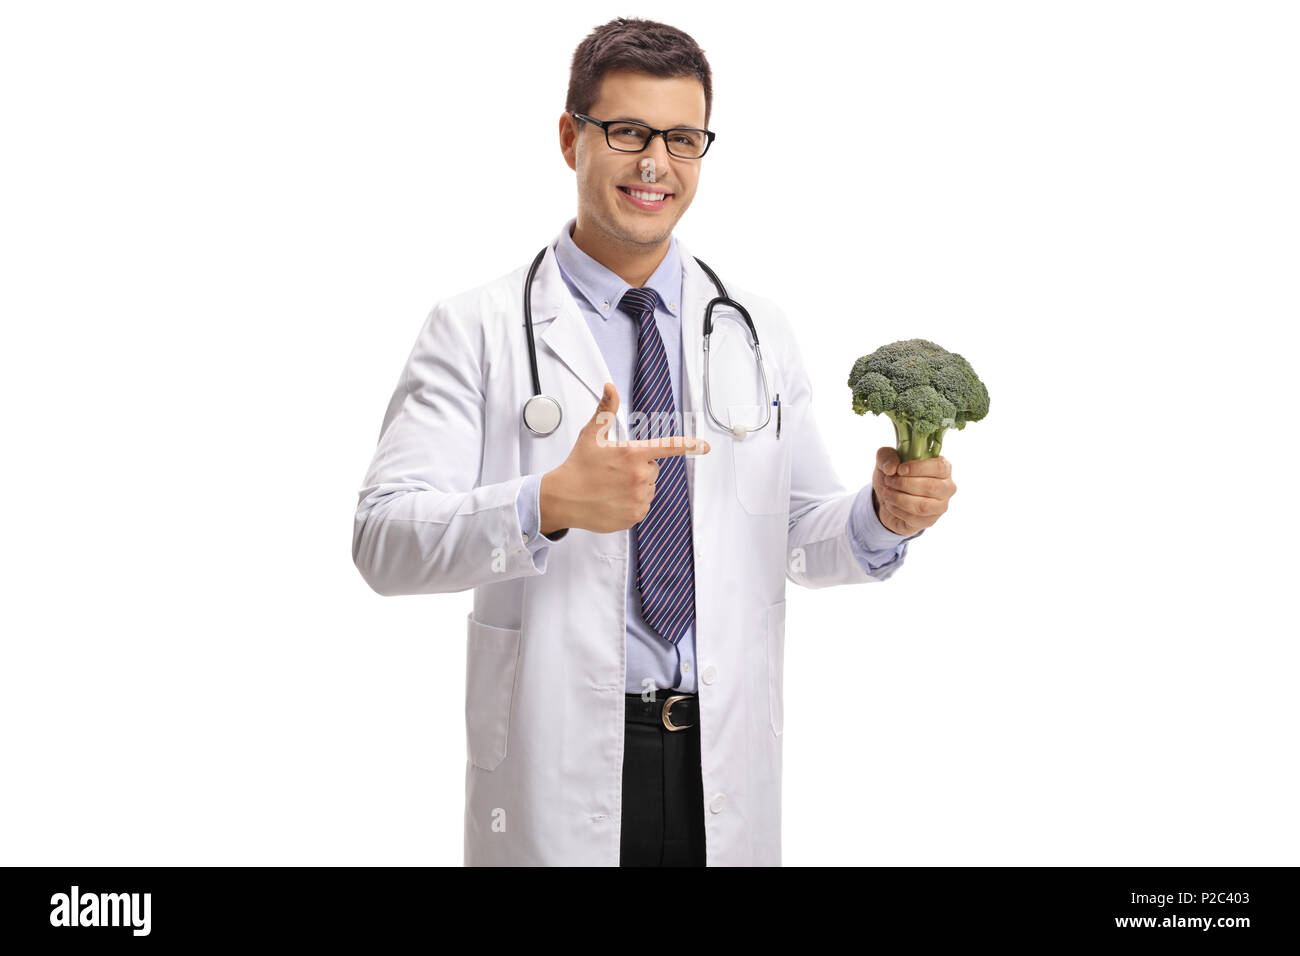 Doctor with broccoli pointing isolated on white background - Stock Image